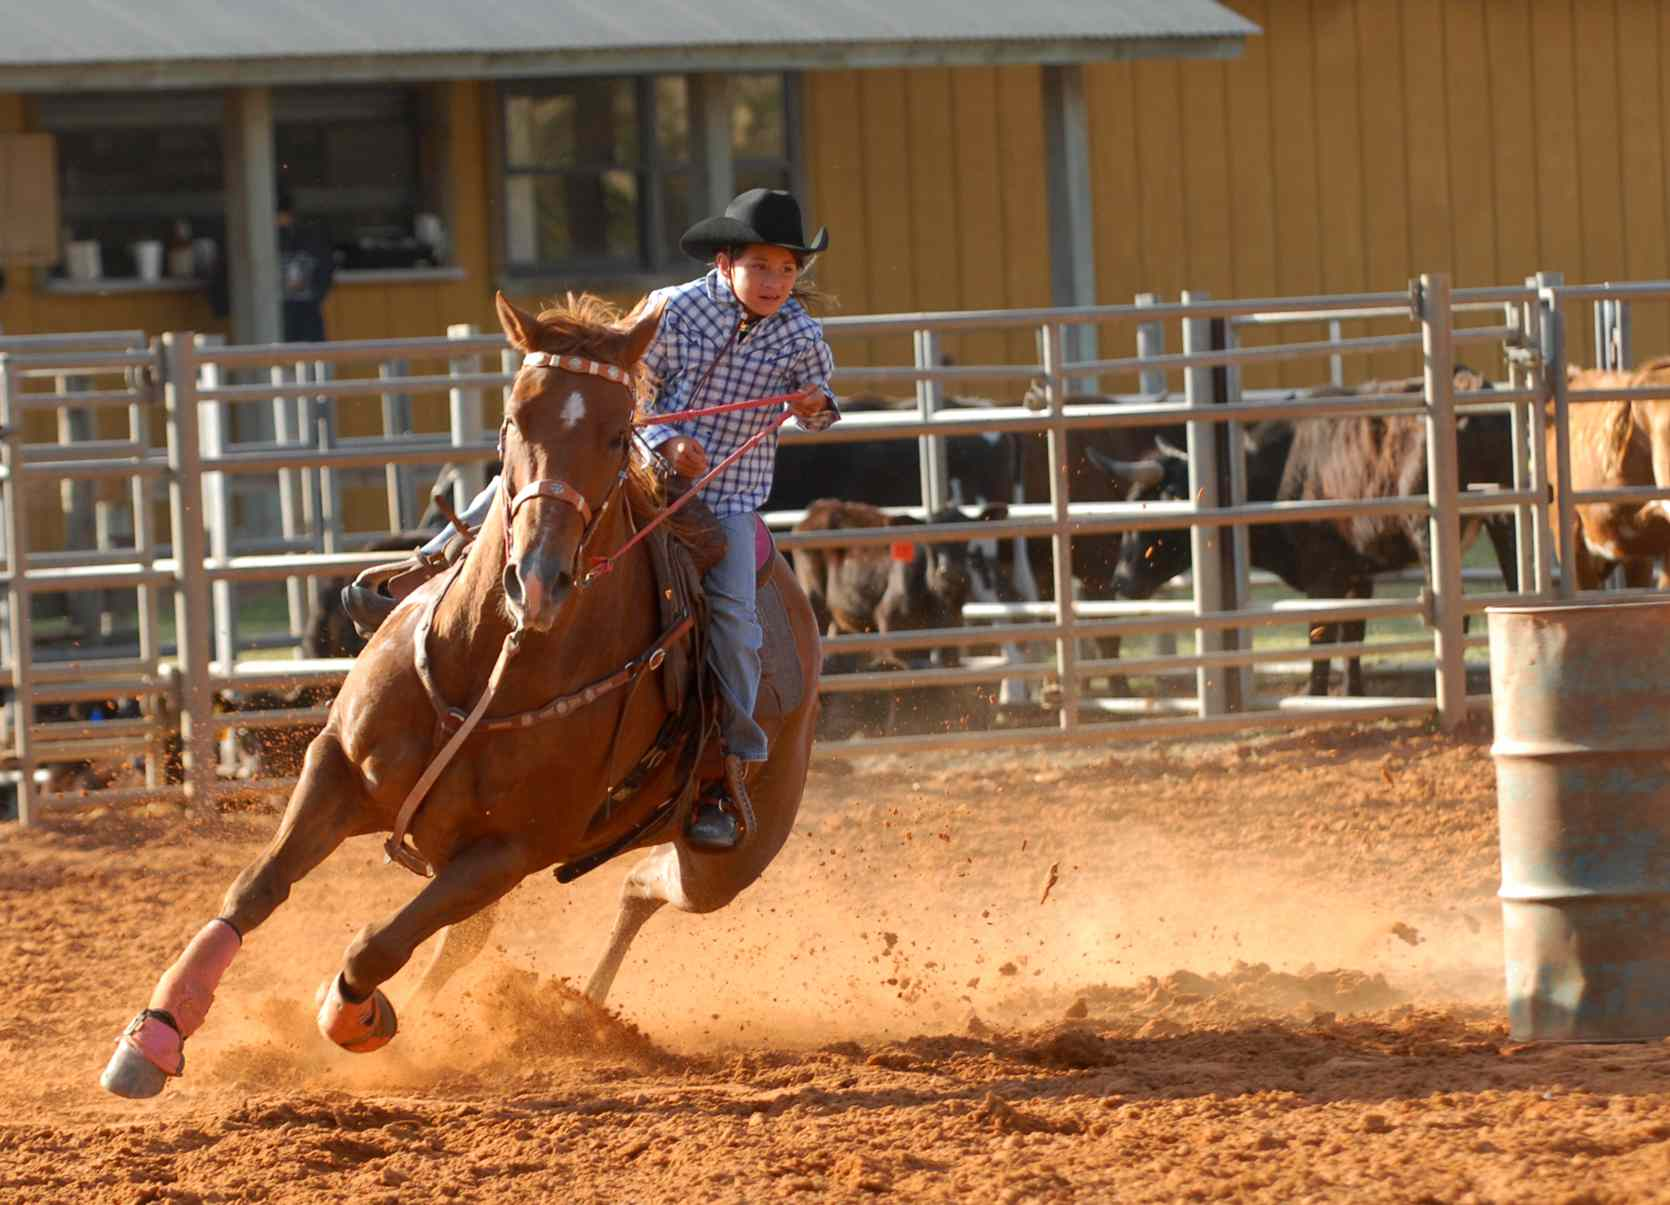 Cowgirl galloping in Texas Rodeo